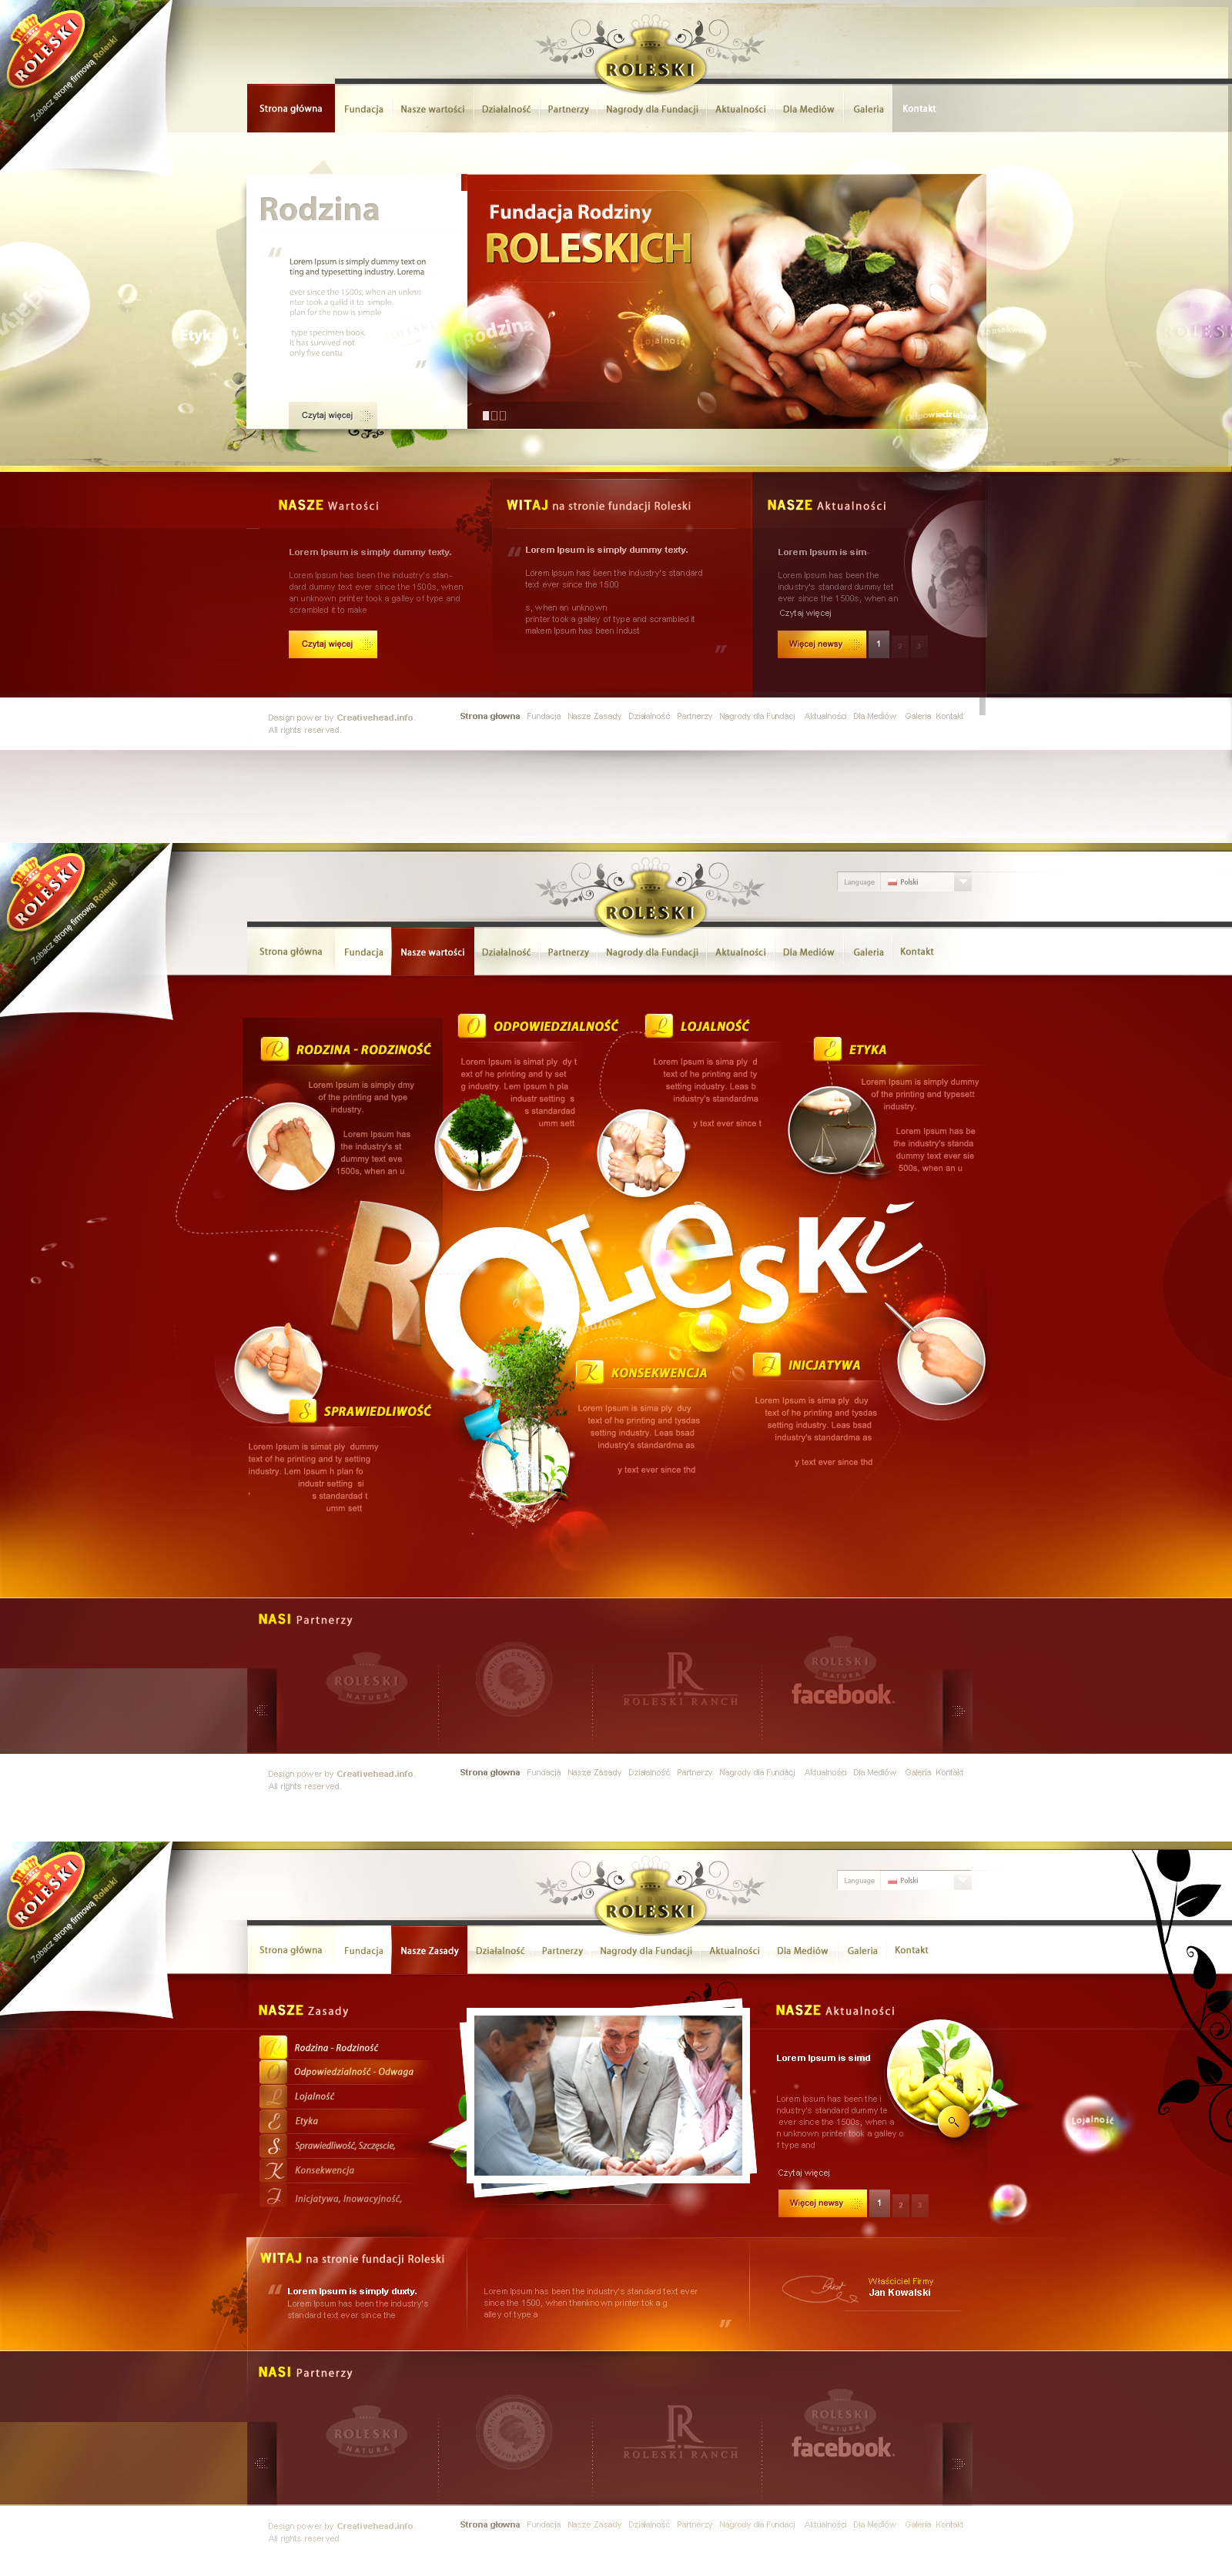 Fundacja Roleskich - design site by webdesigner1921